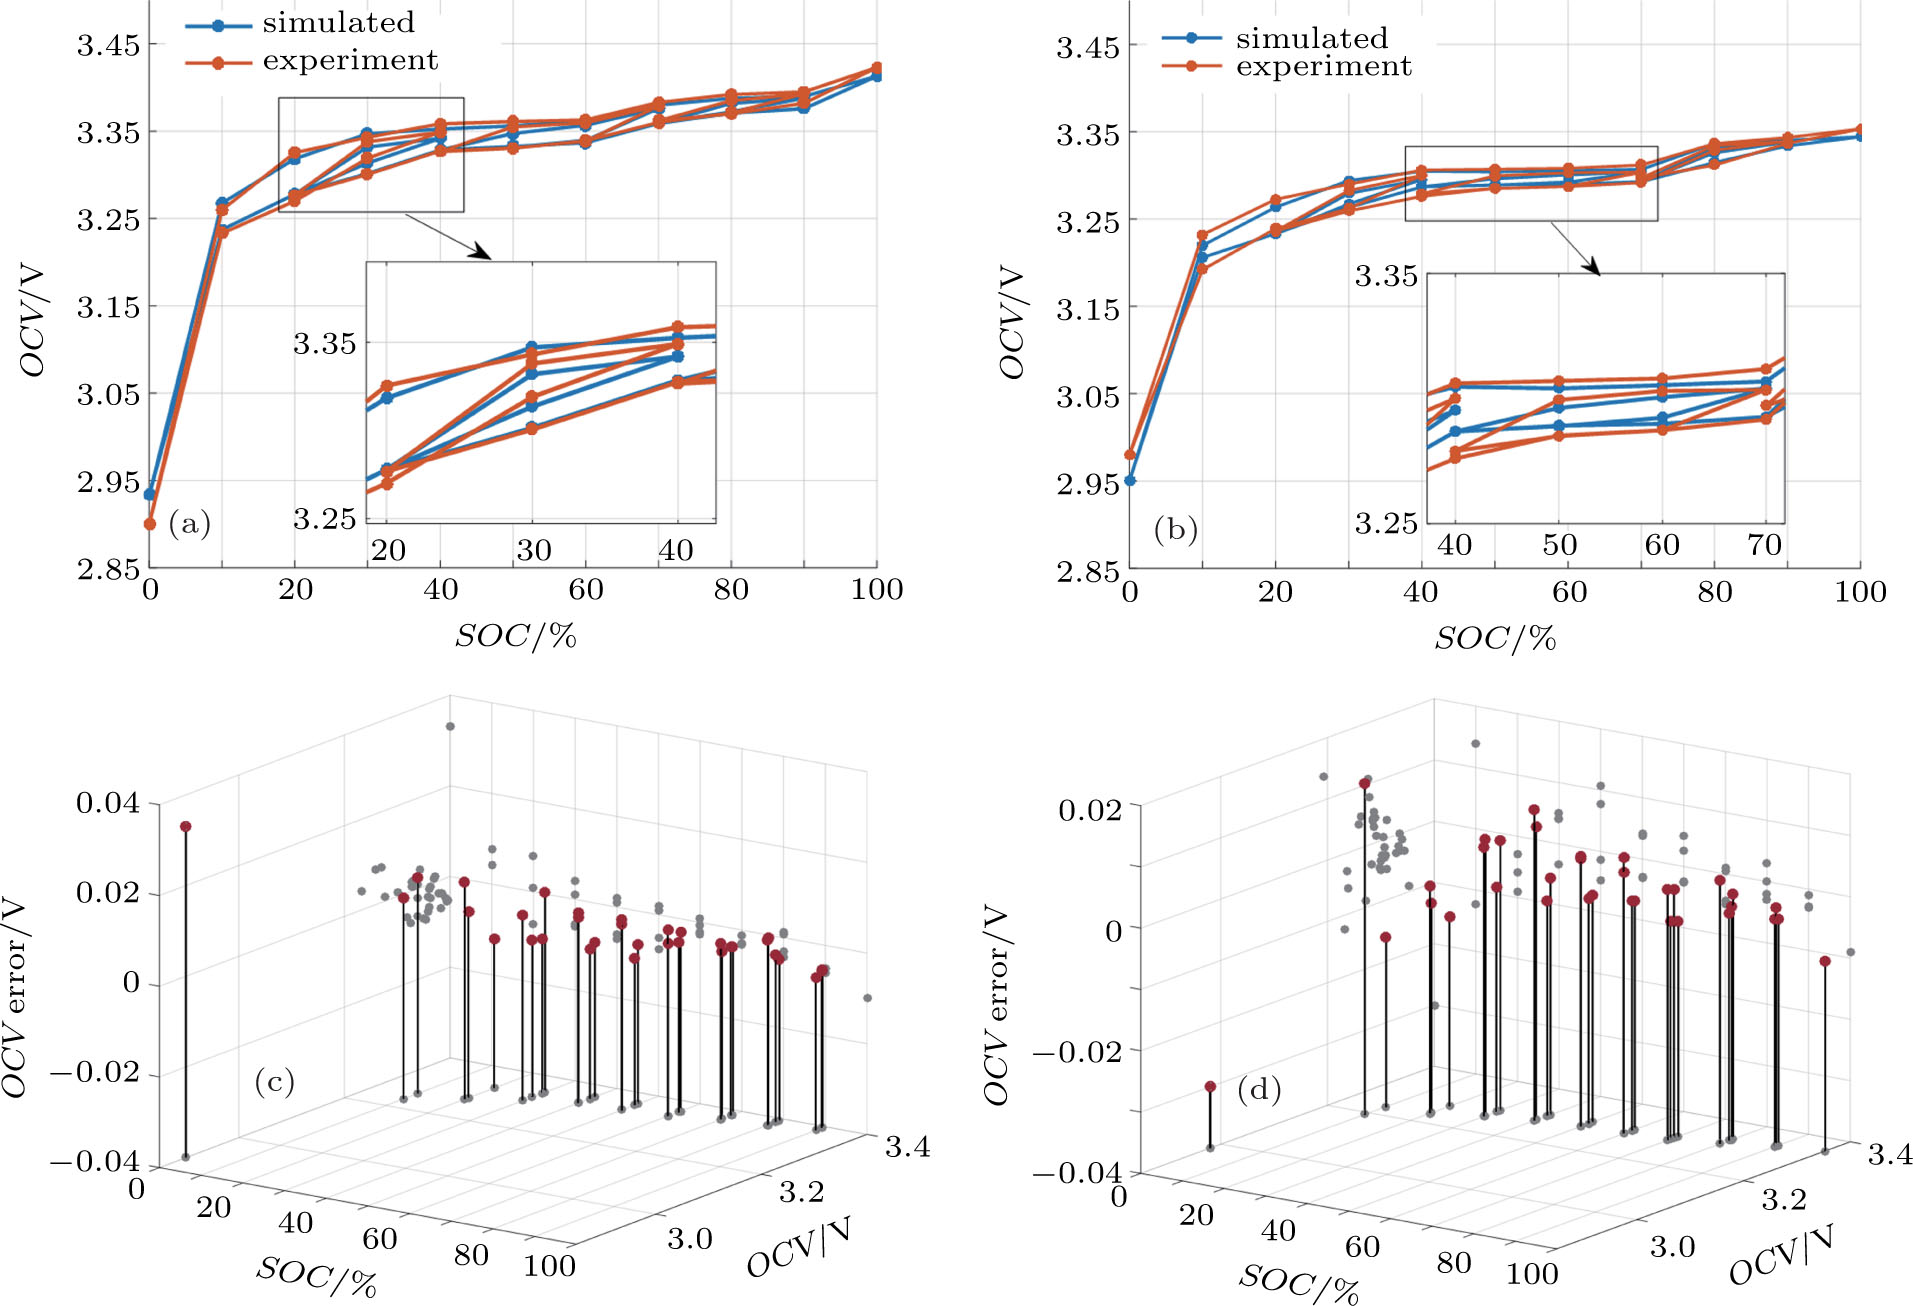 Modeling Of Lifepo4 Battery Open Circuit Voltage Hysteresis Based On Diagram C Ocv Estimation Error Scatter Cell A D B The Insert Show Linear Amplification